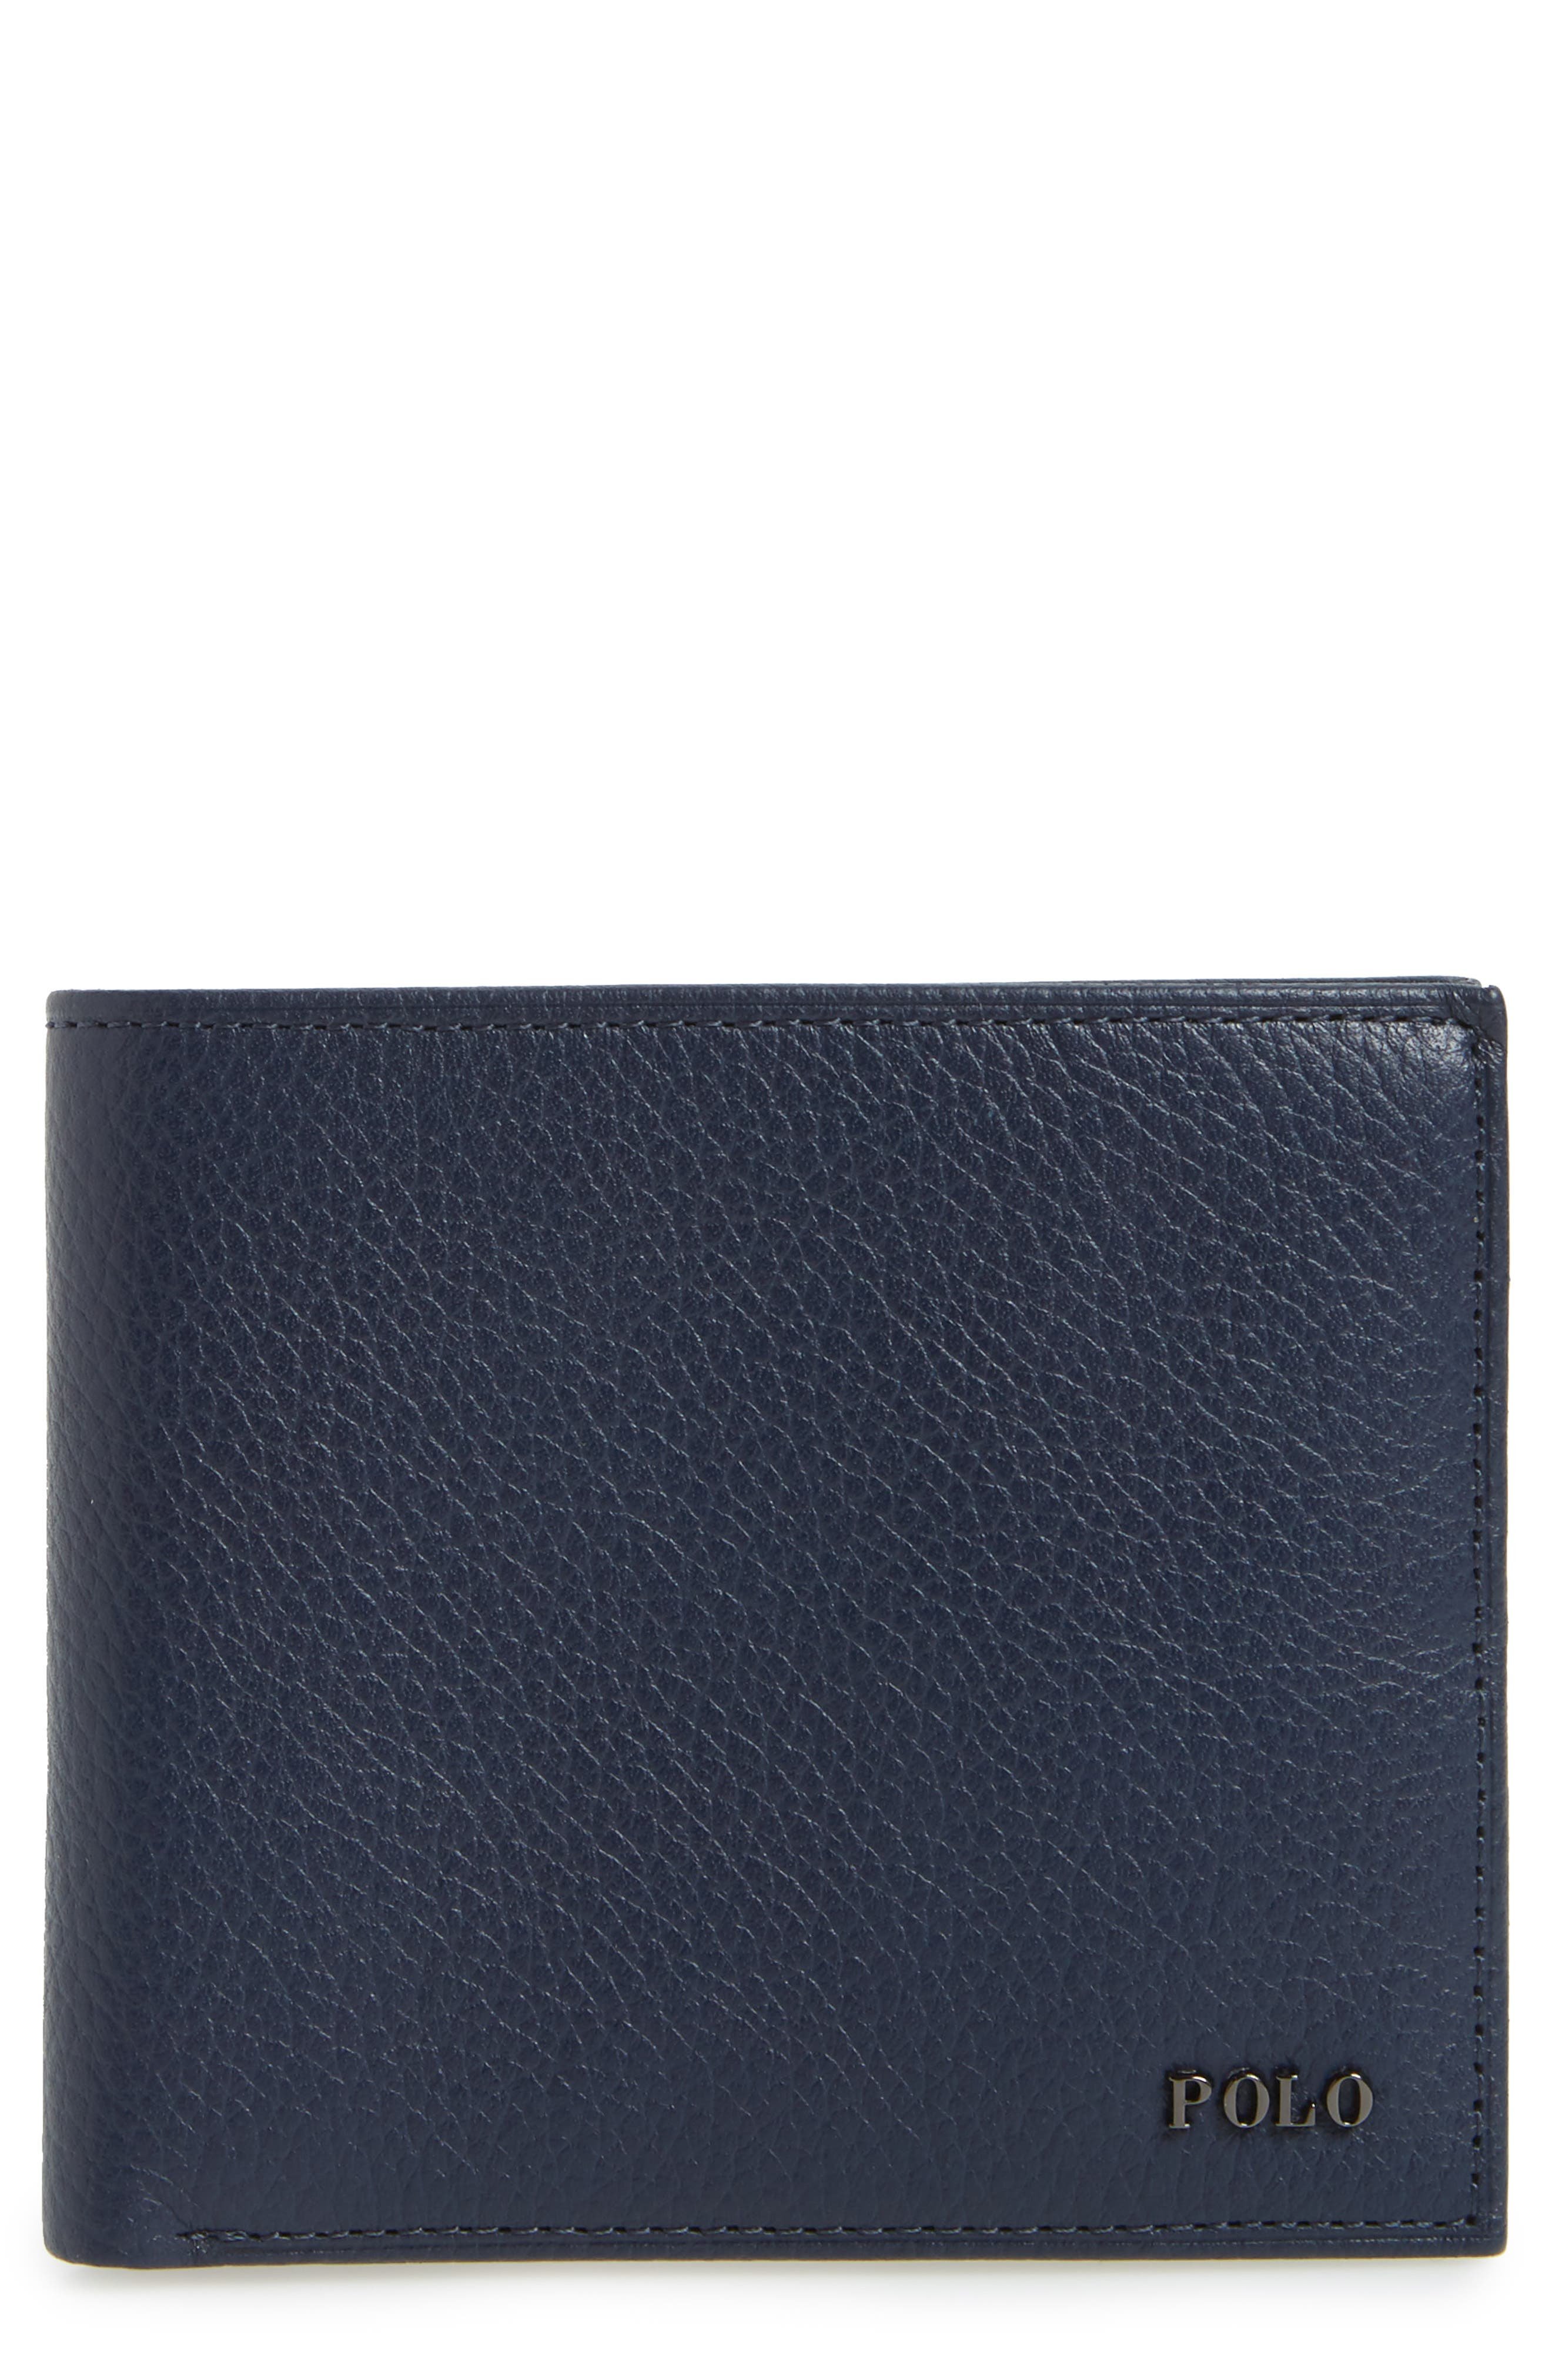 Leather Wallet,                         Main,                         color, 400